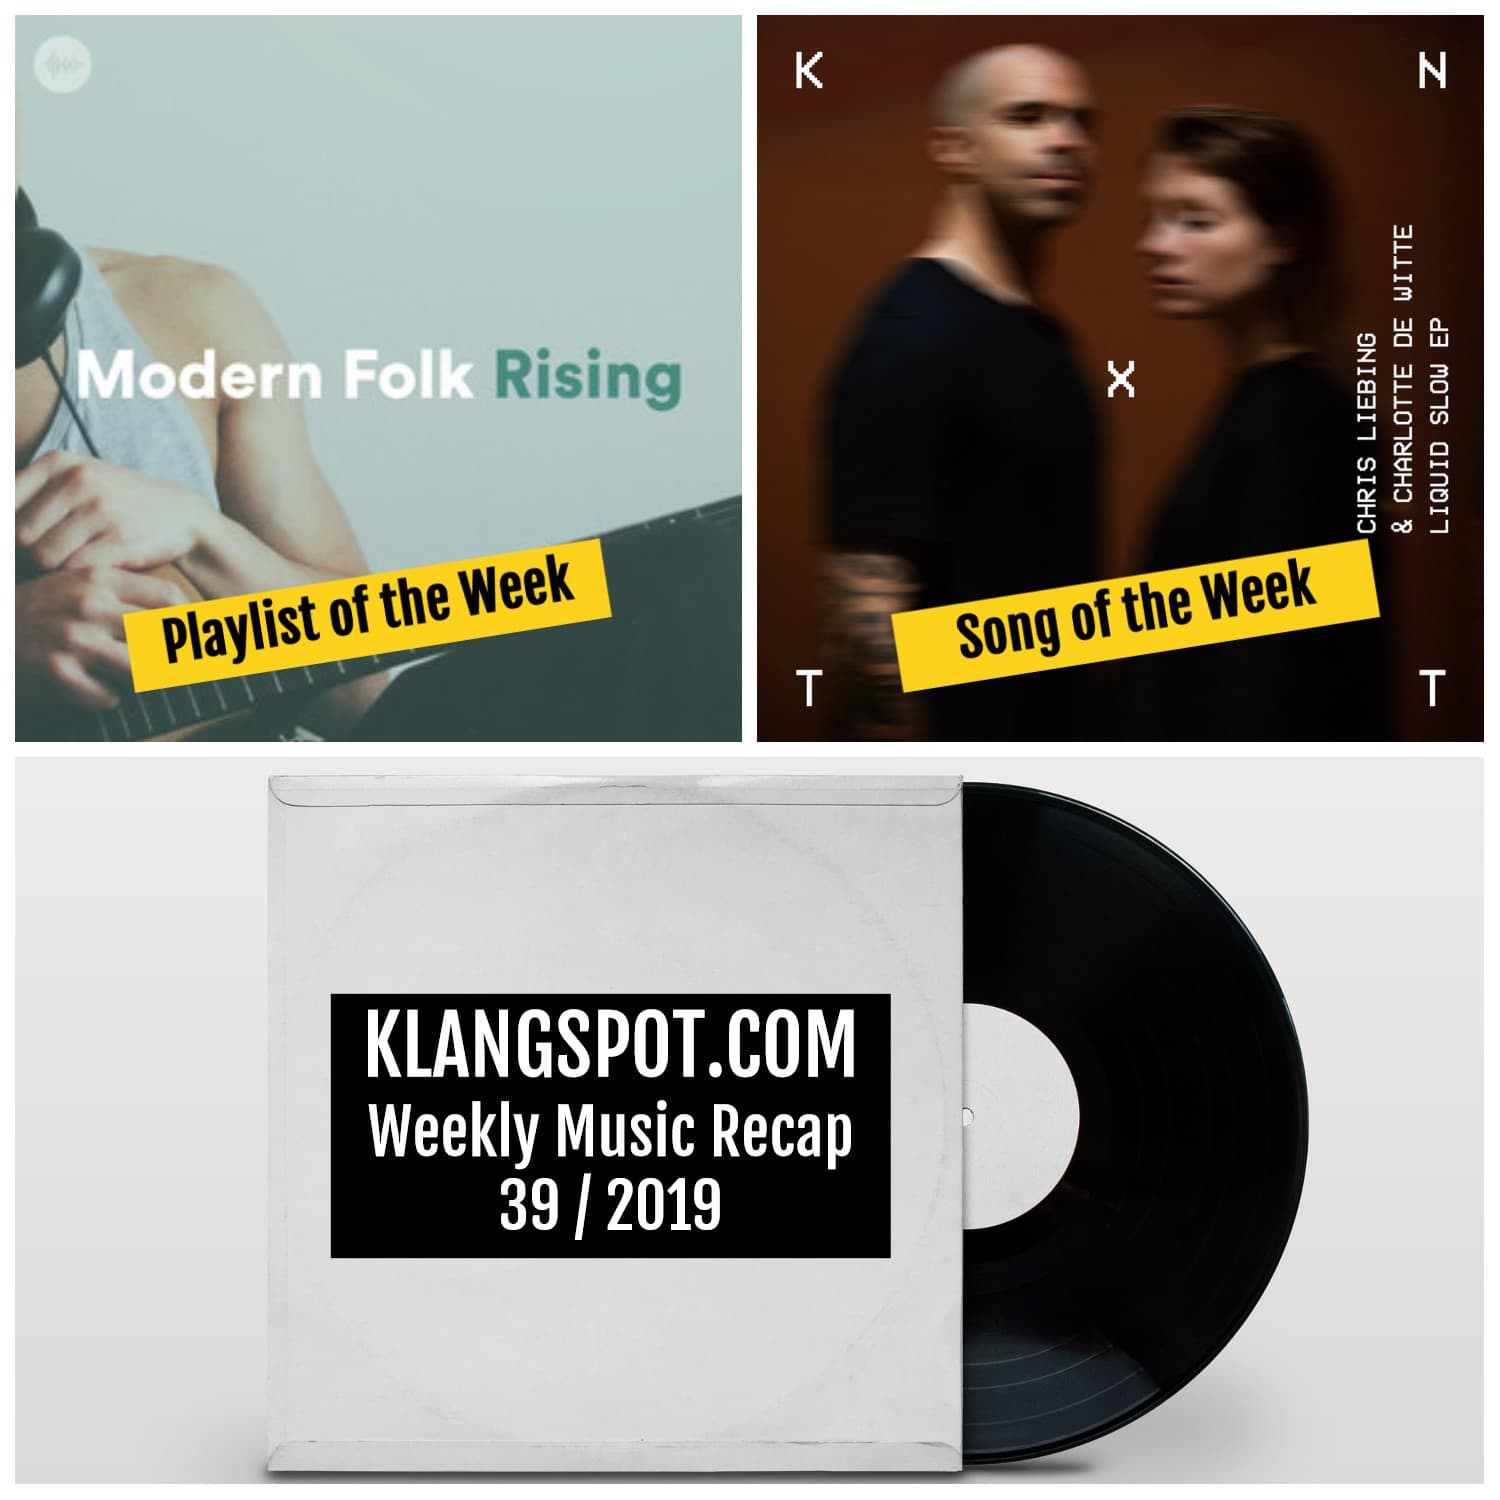 Weekly Music Recap 39/2019: Modern Folk Rising / Chris Liebing & Charlotte de Witte - 'In Memory'